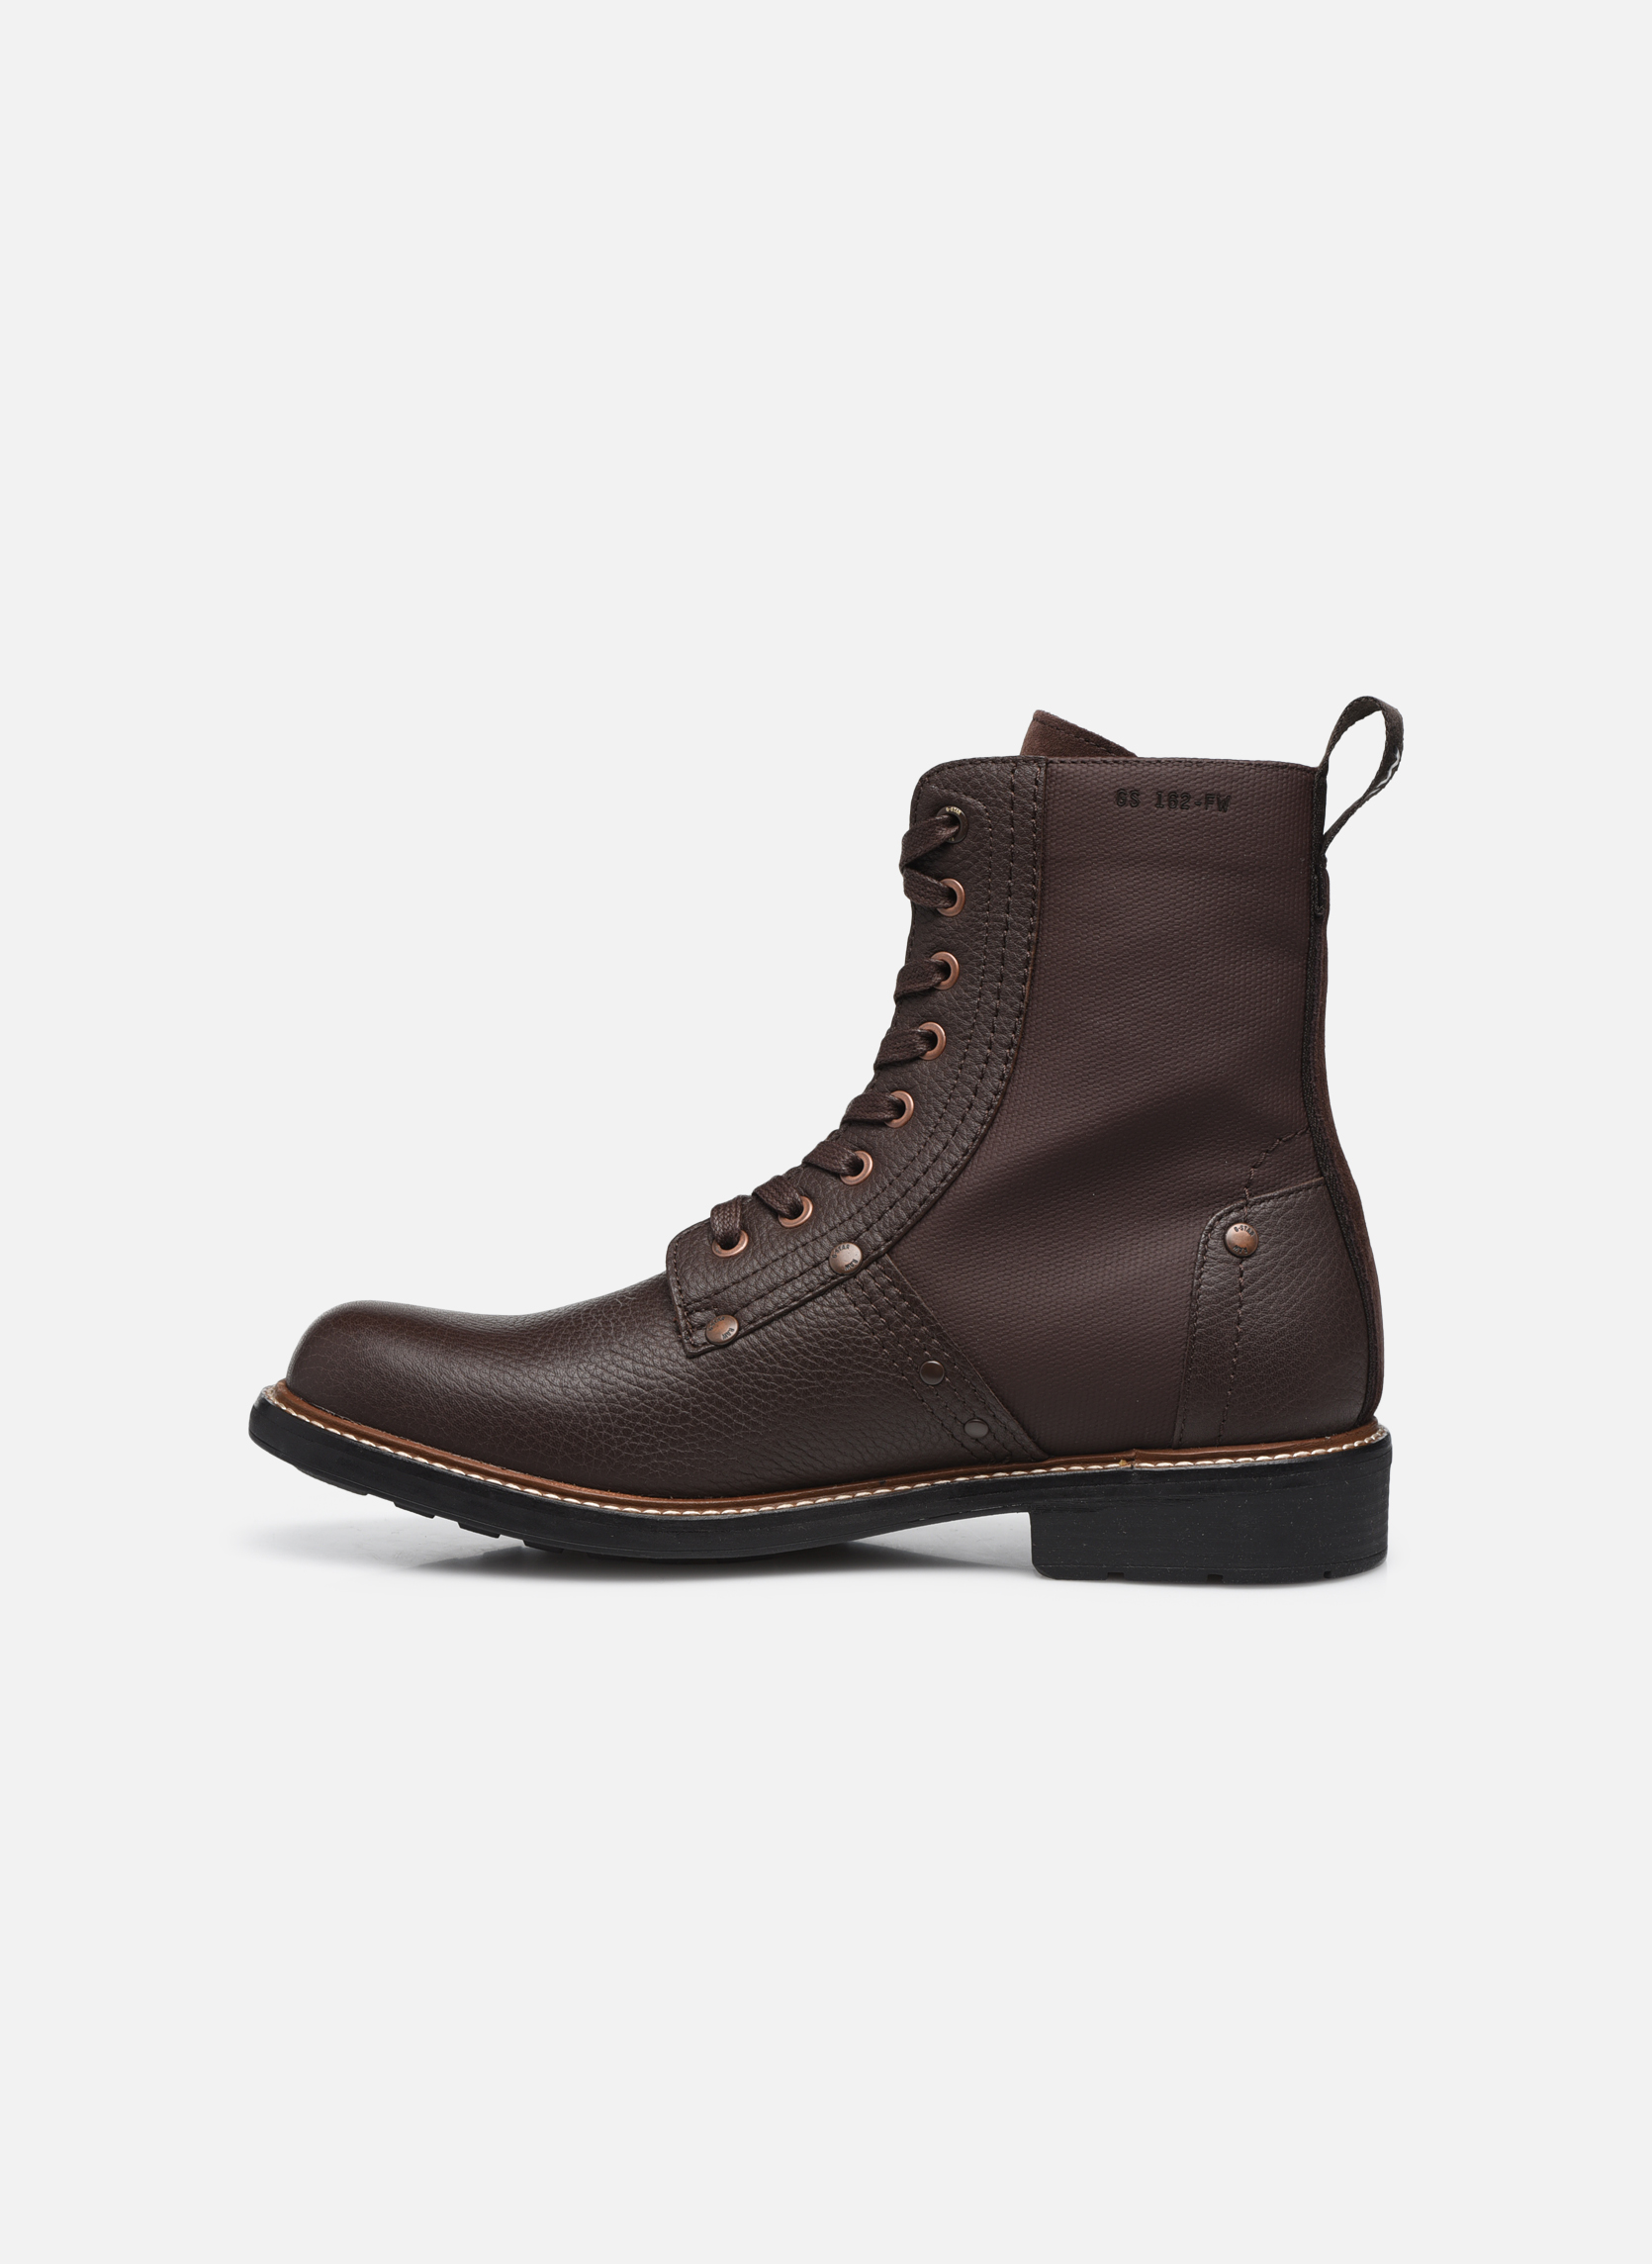 Bottines et boots G-Star Labour Marron vue face